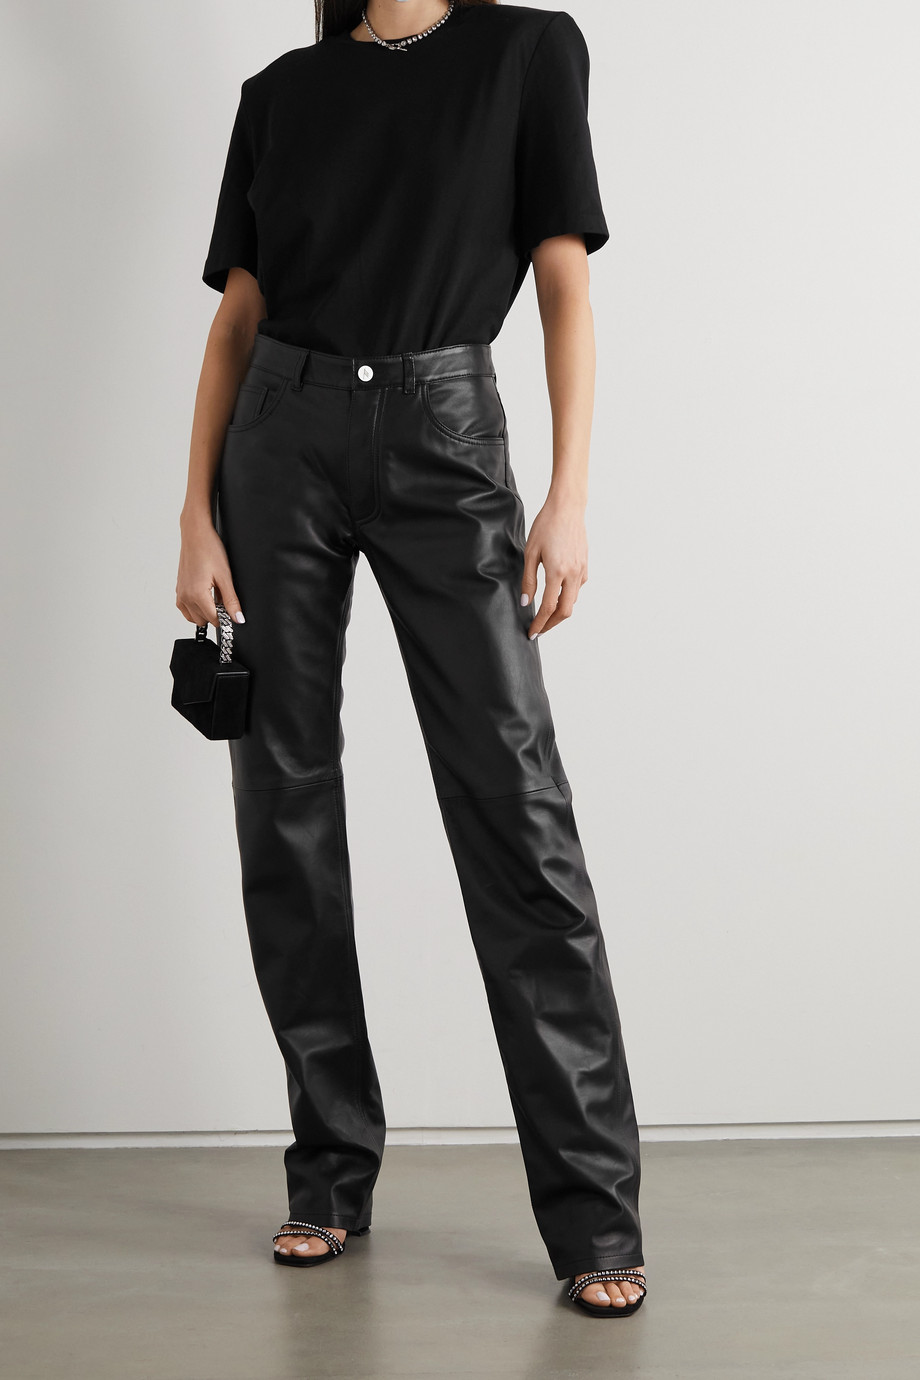 The Attico Leather straight-leg pants